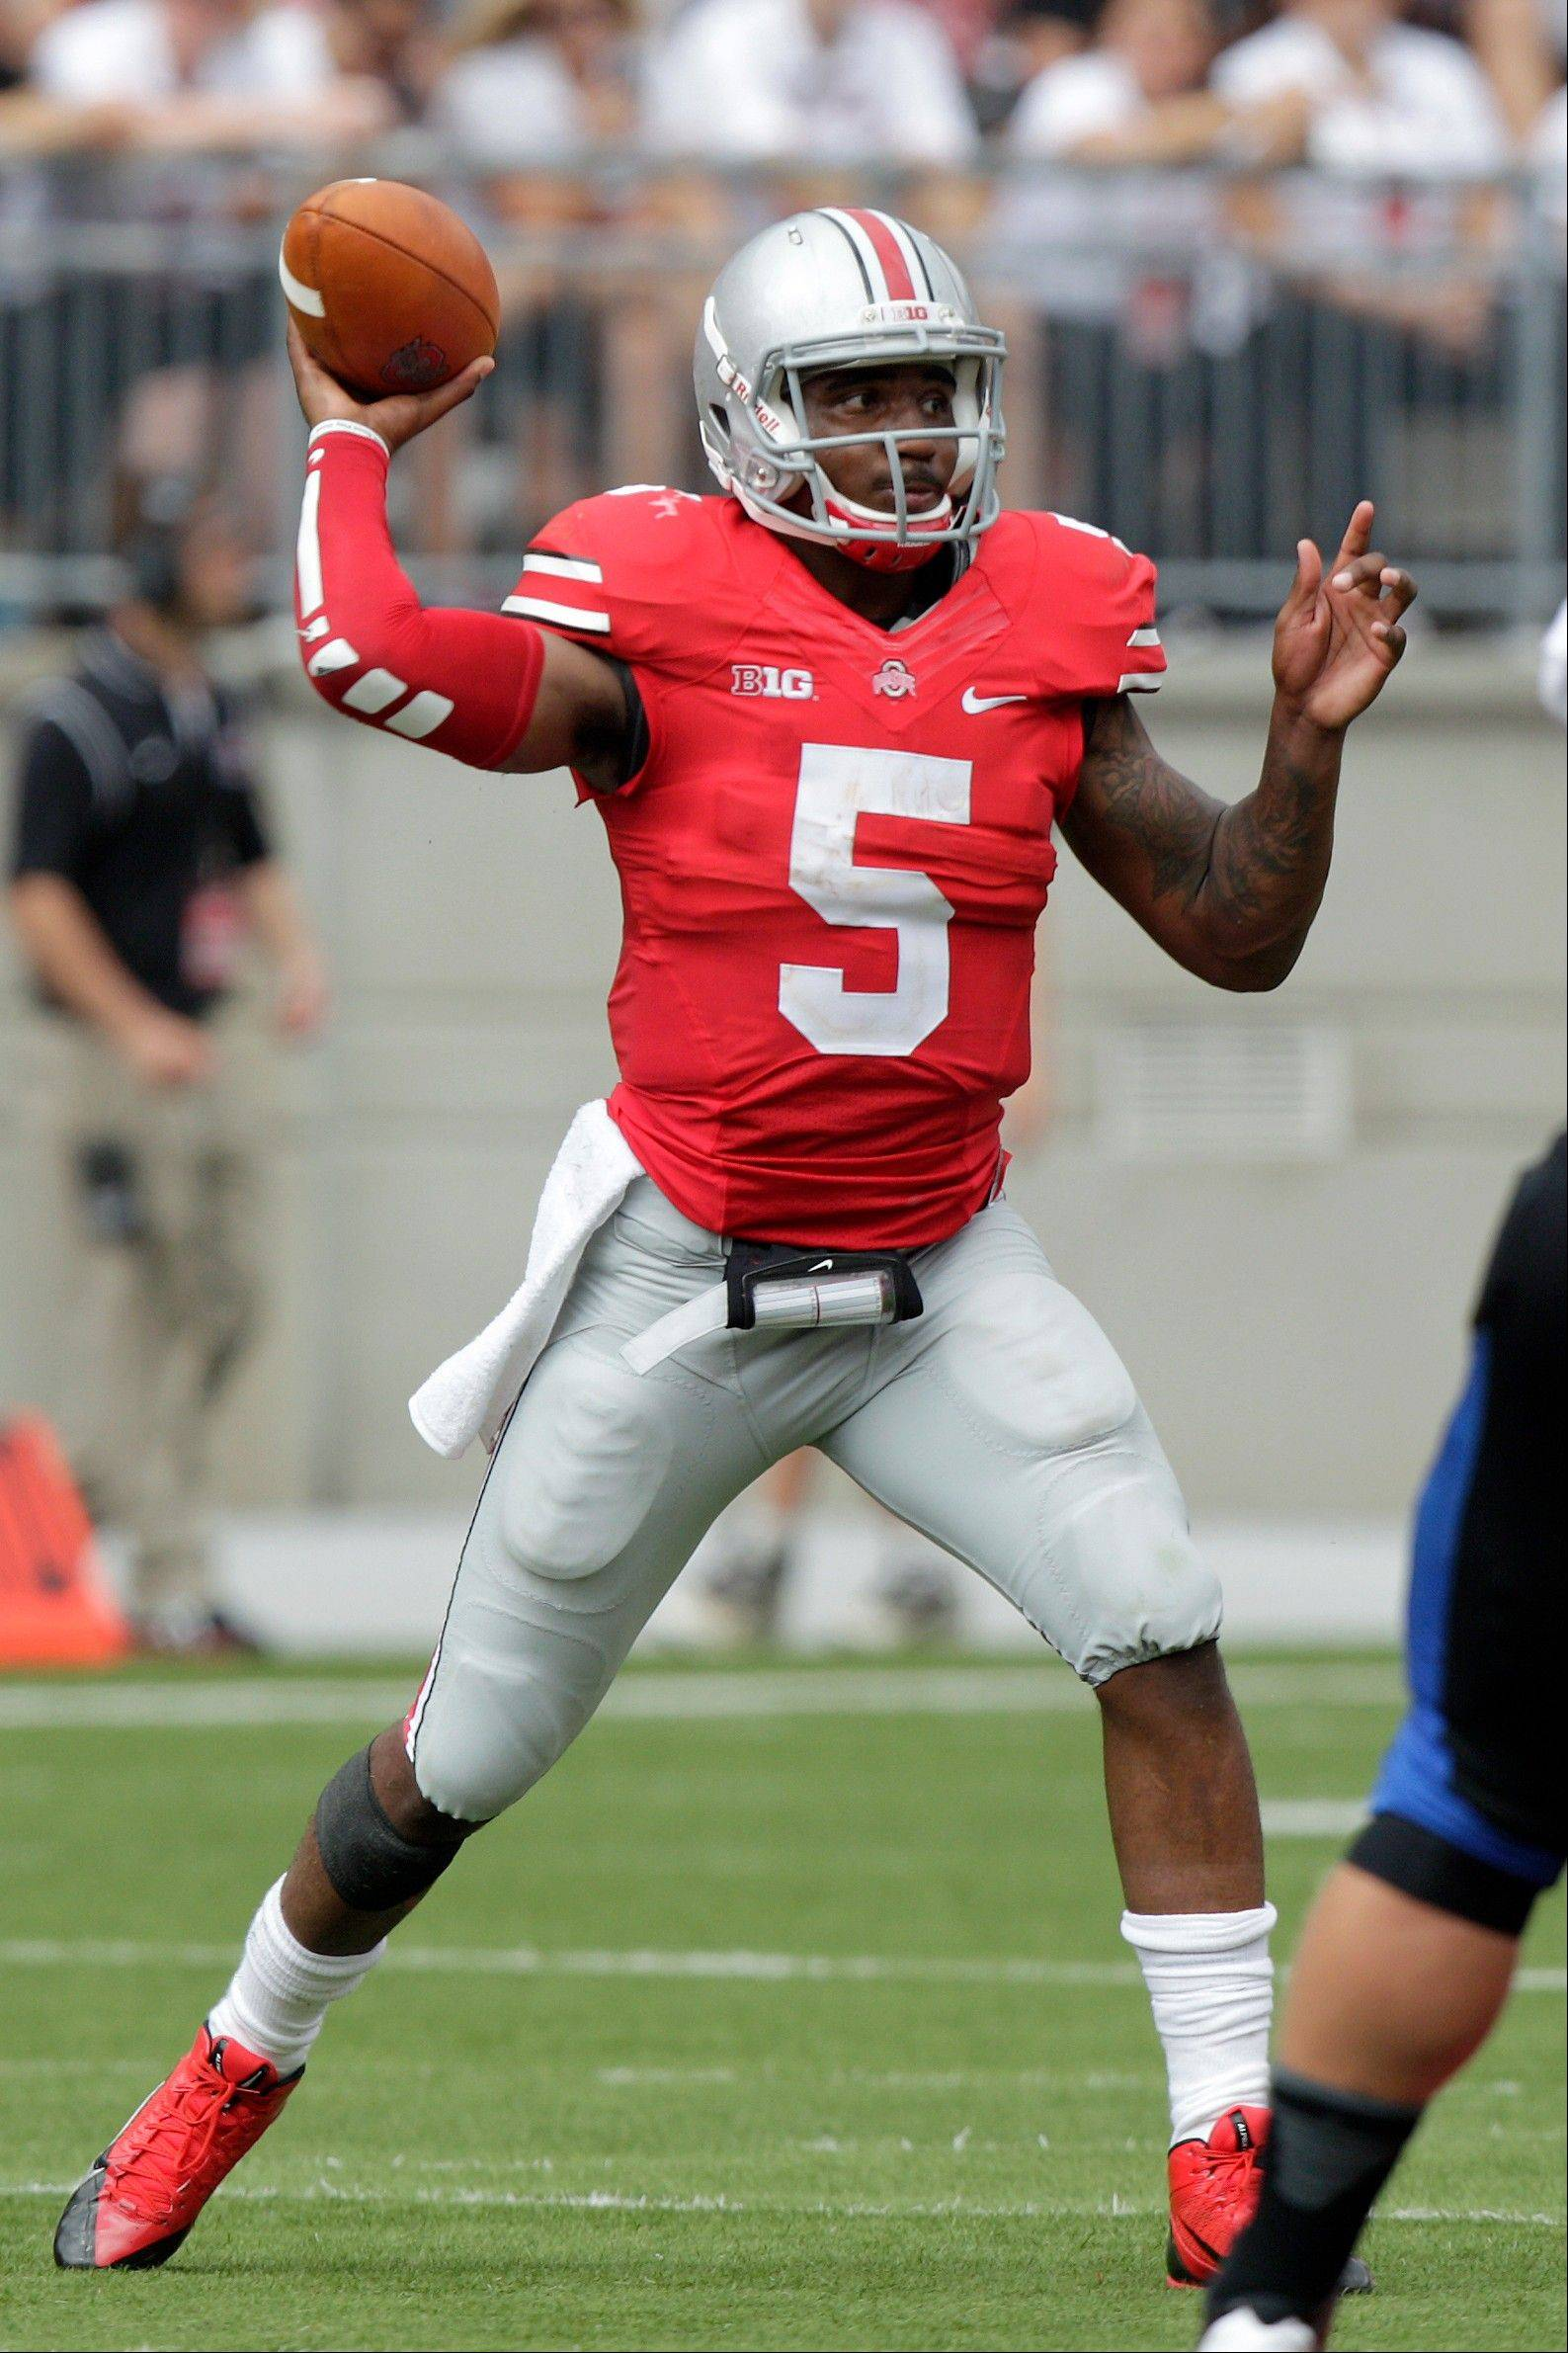 Ohio State quarterback Braxton Miller will be back on the field for Saturday's home game against Florida A&M.